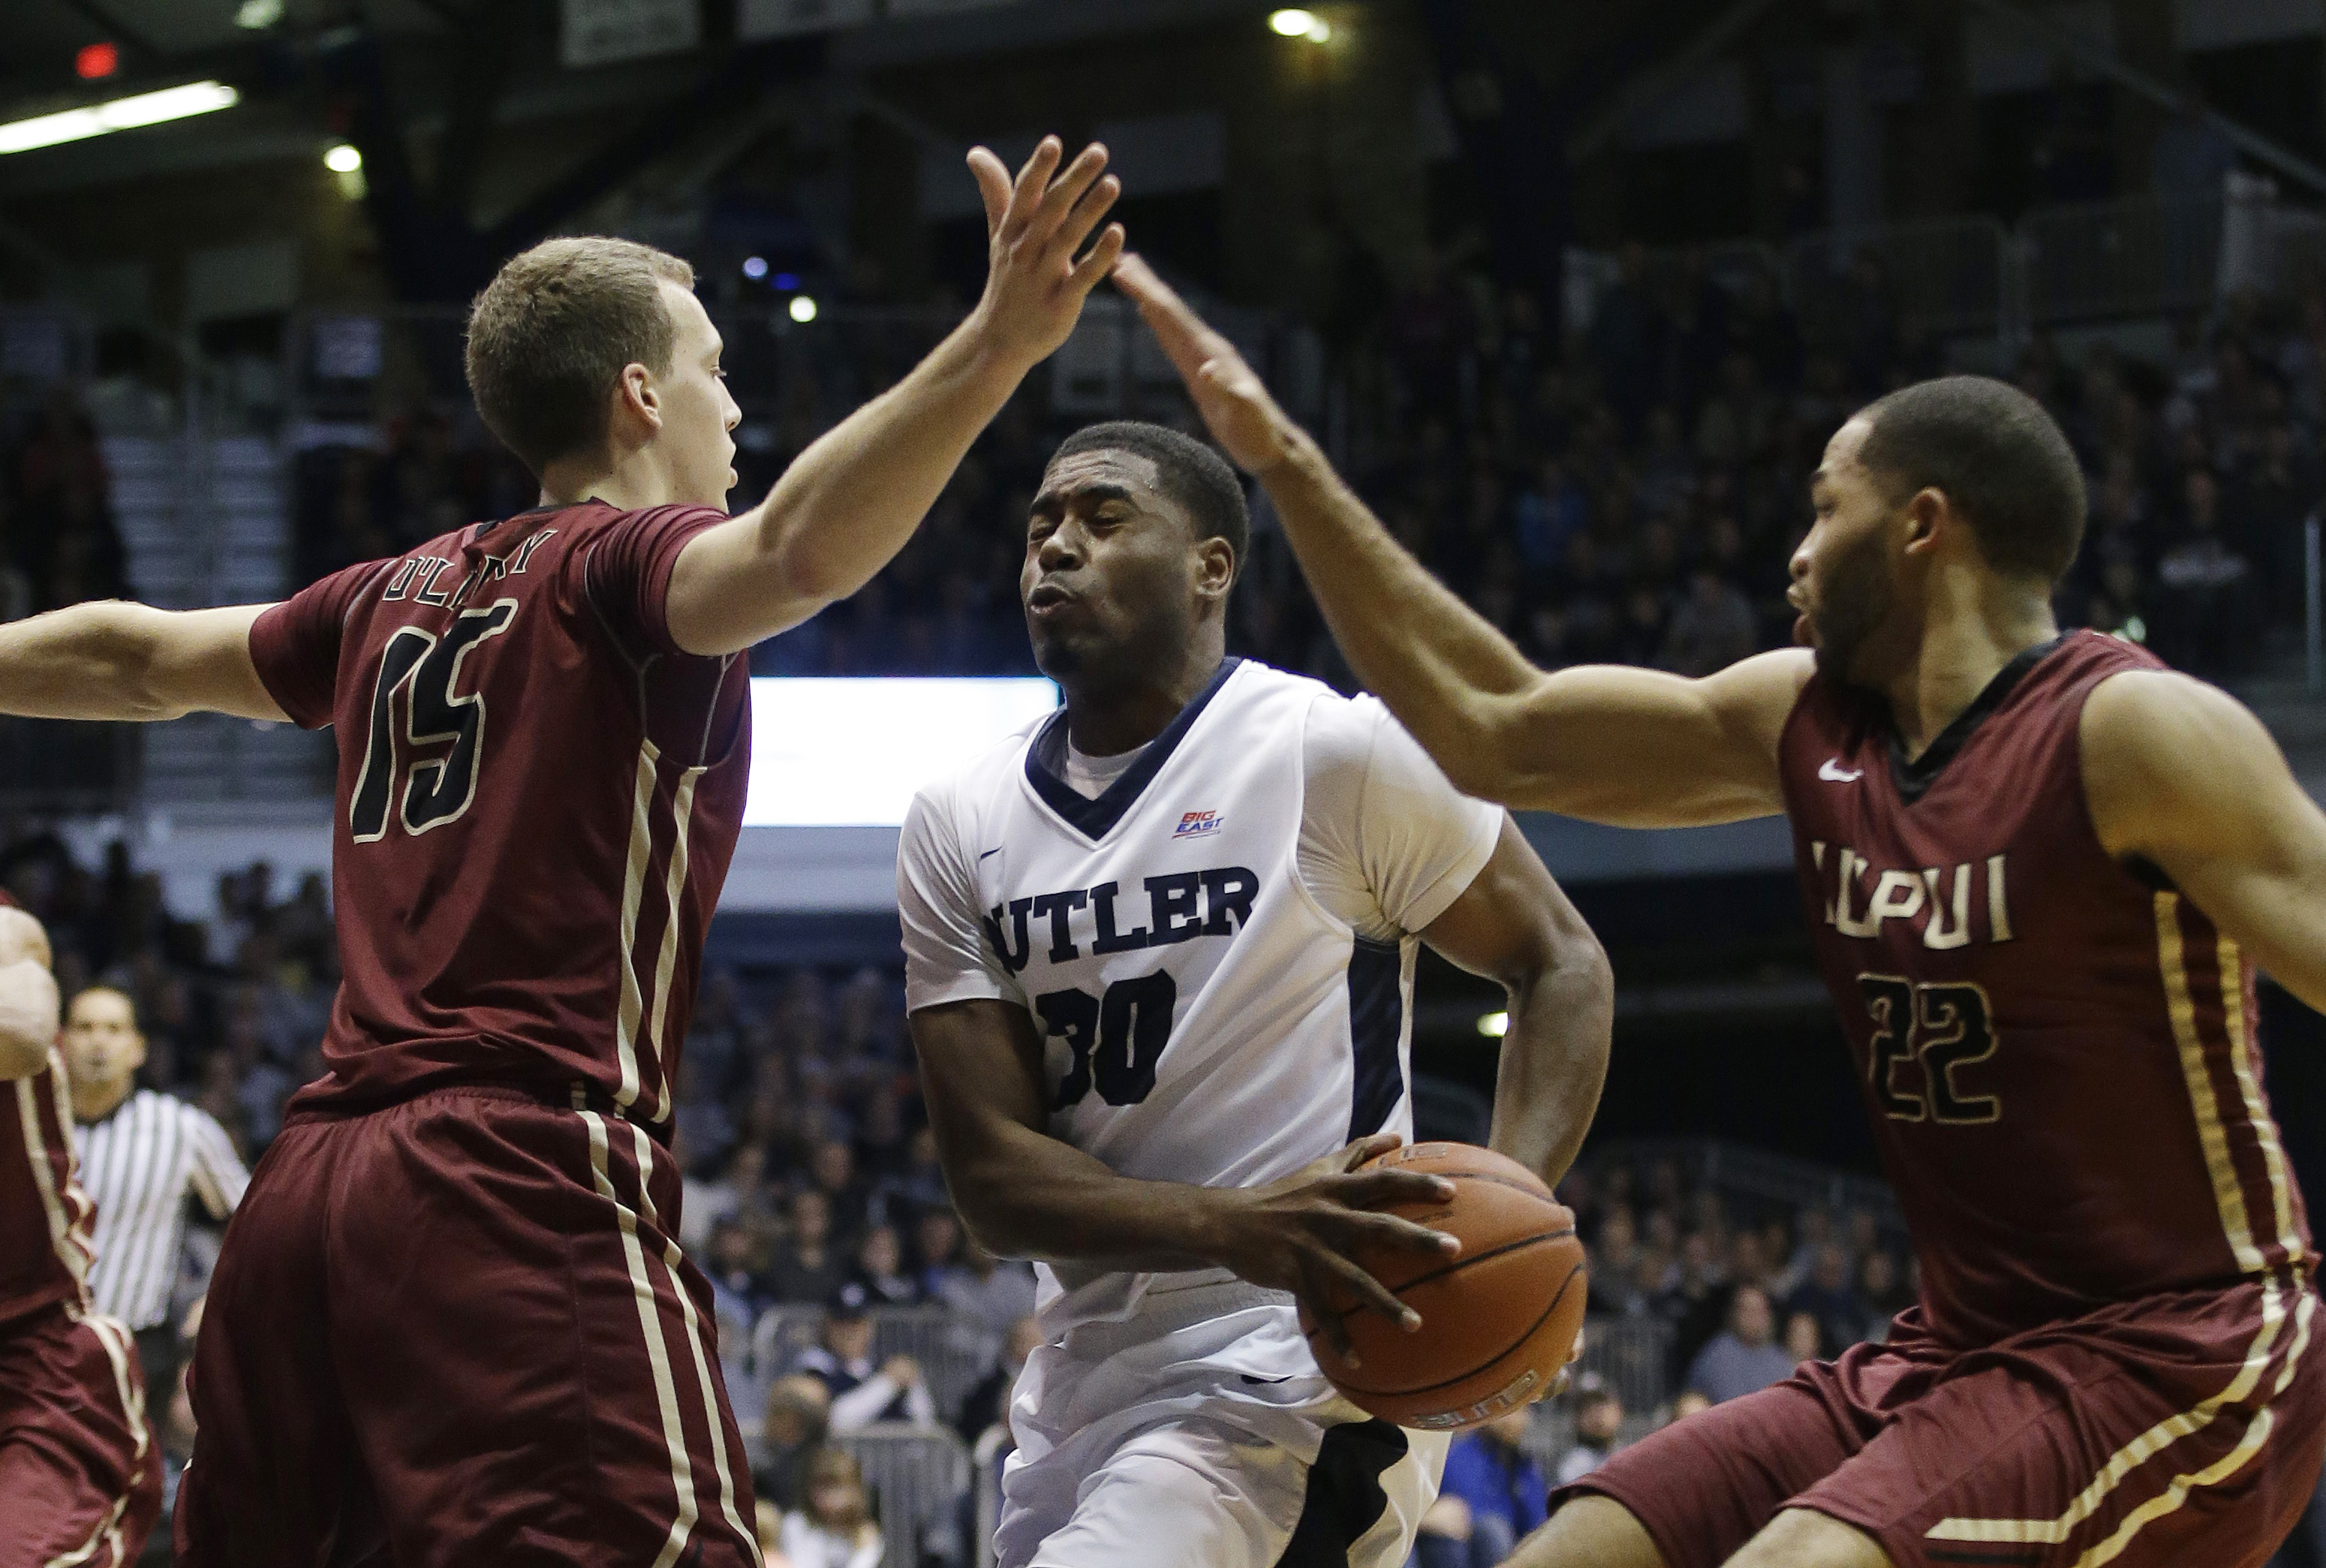 Butler's Kelan Martin (30) goes to the basket against IUPUI's Matt O'Leary (15) and Marcellus Barksdale (22) during the first half of an NCAA college basketball game Monday, Dec. 28, 2015, in Indianapolis. (AP Photo/Darron Cummings)